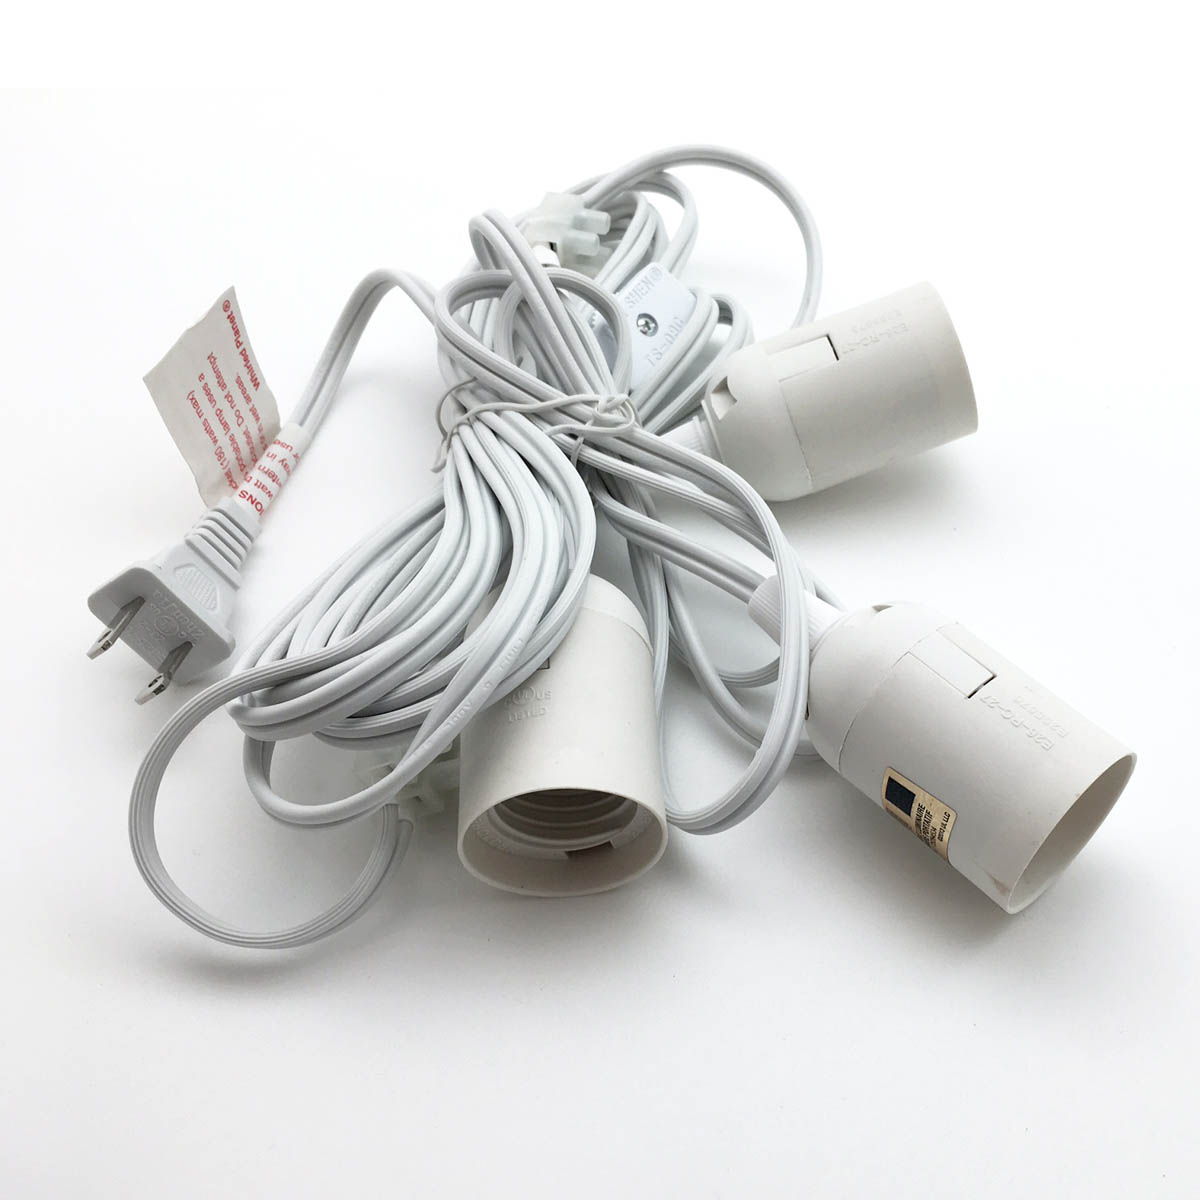 Whirled Planet Triple Socket Cord w/ On/Off Switch - White